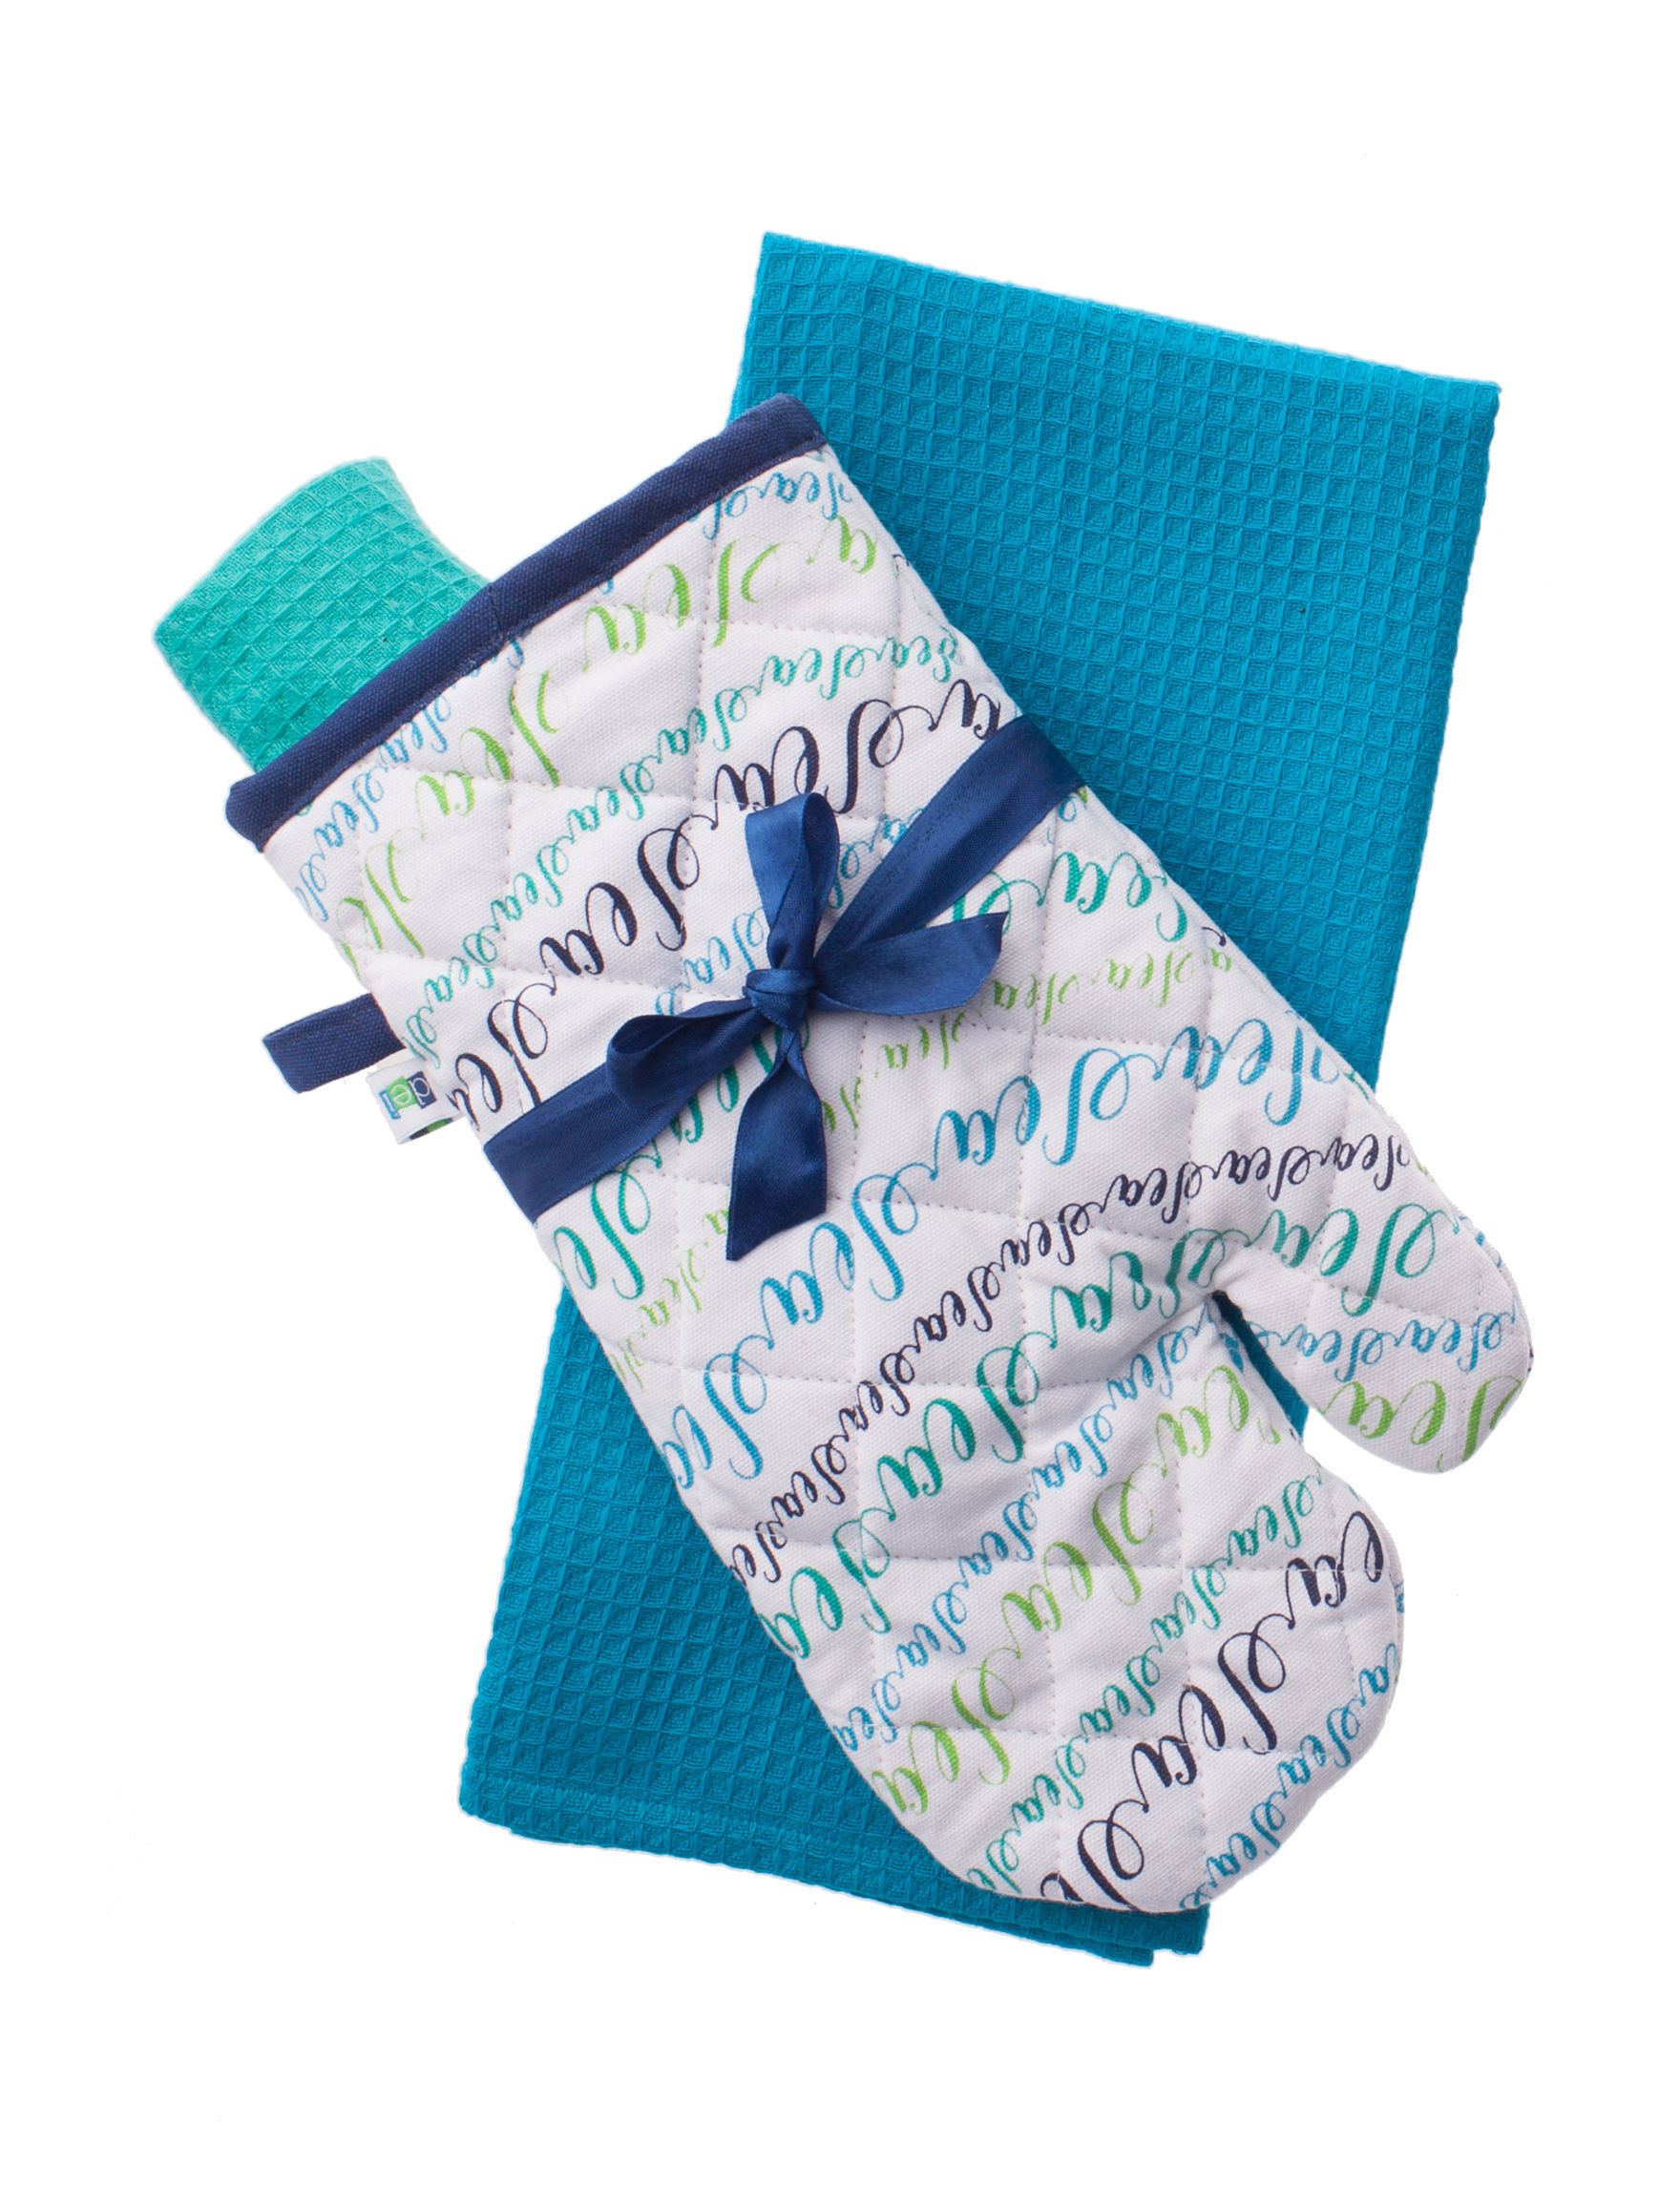 Dennis East White / Blue Dish Towels Oven Mitts & Pot Holders Kitchen Linens